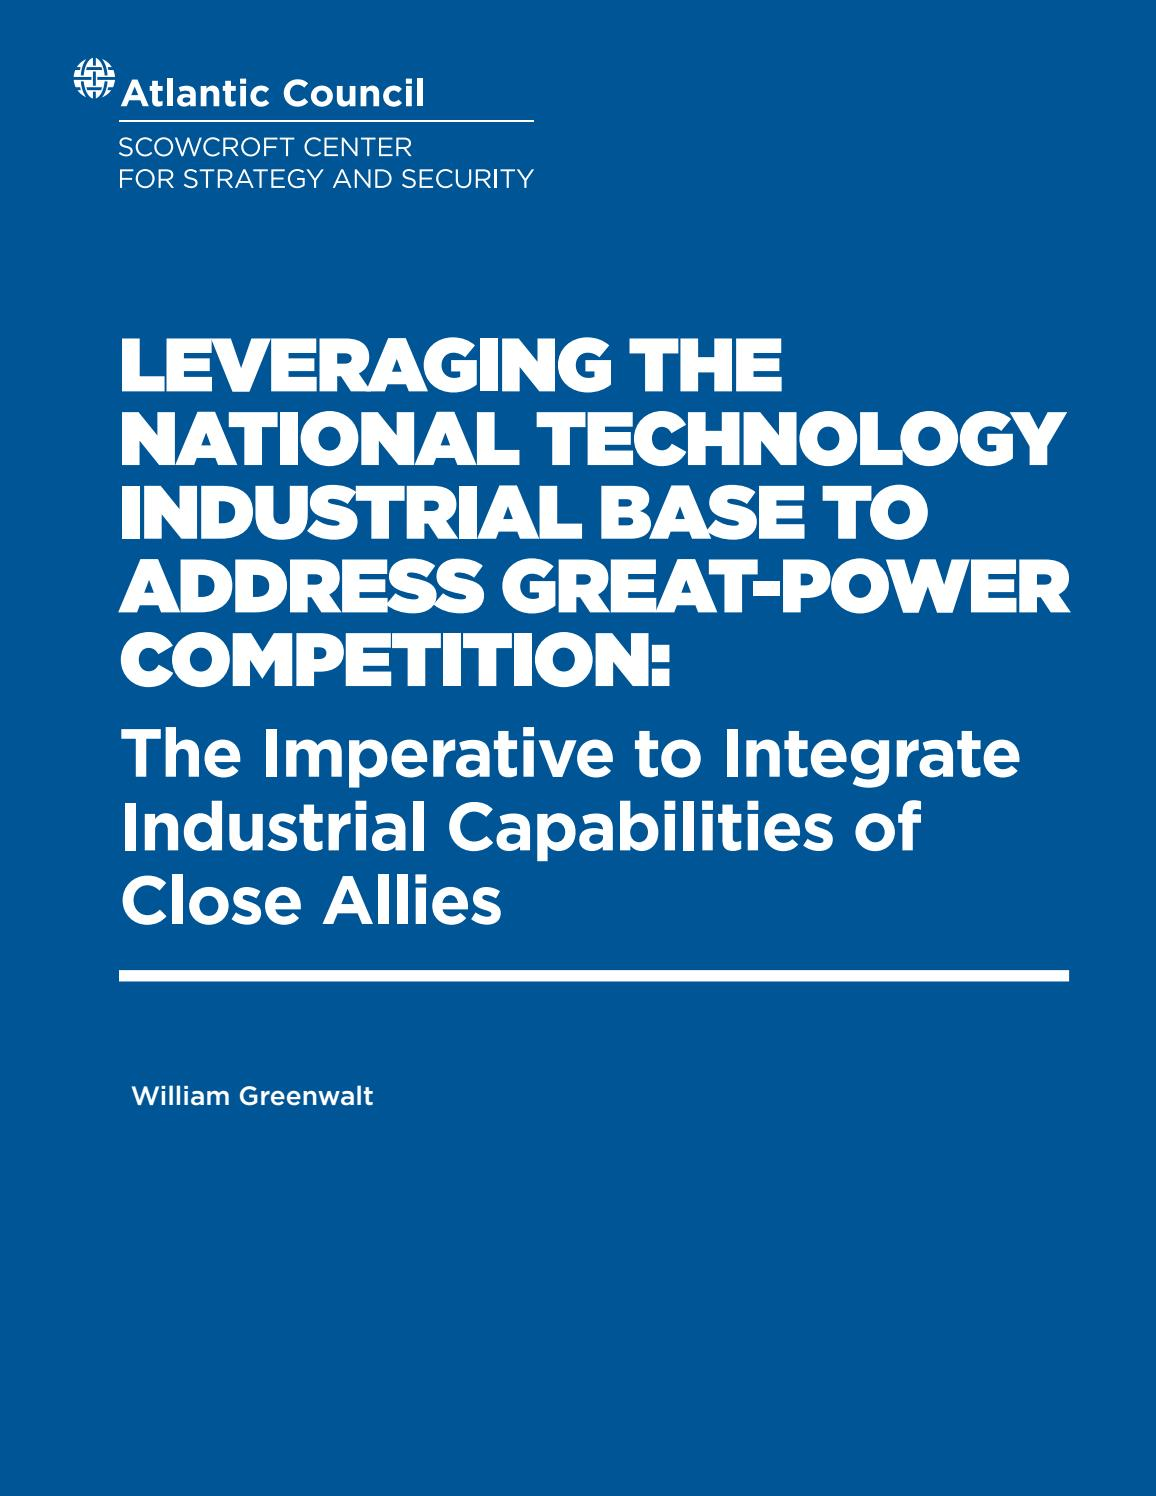 Leveraging the National Technology Industrial Base to